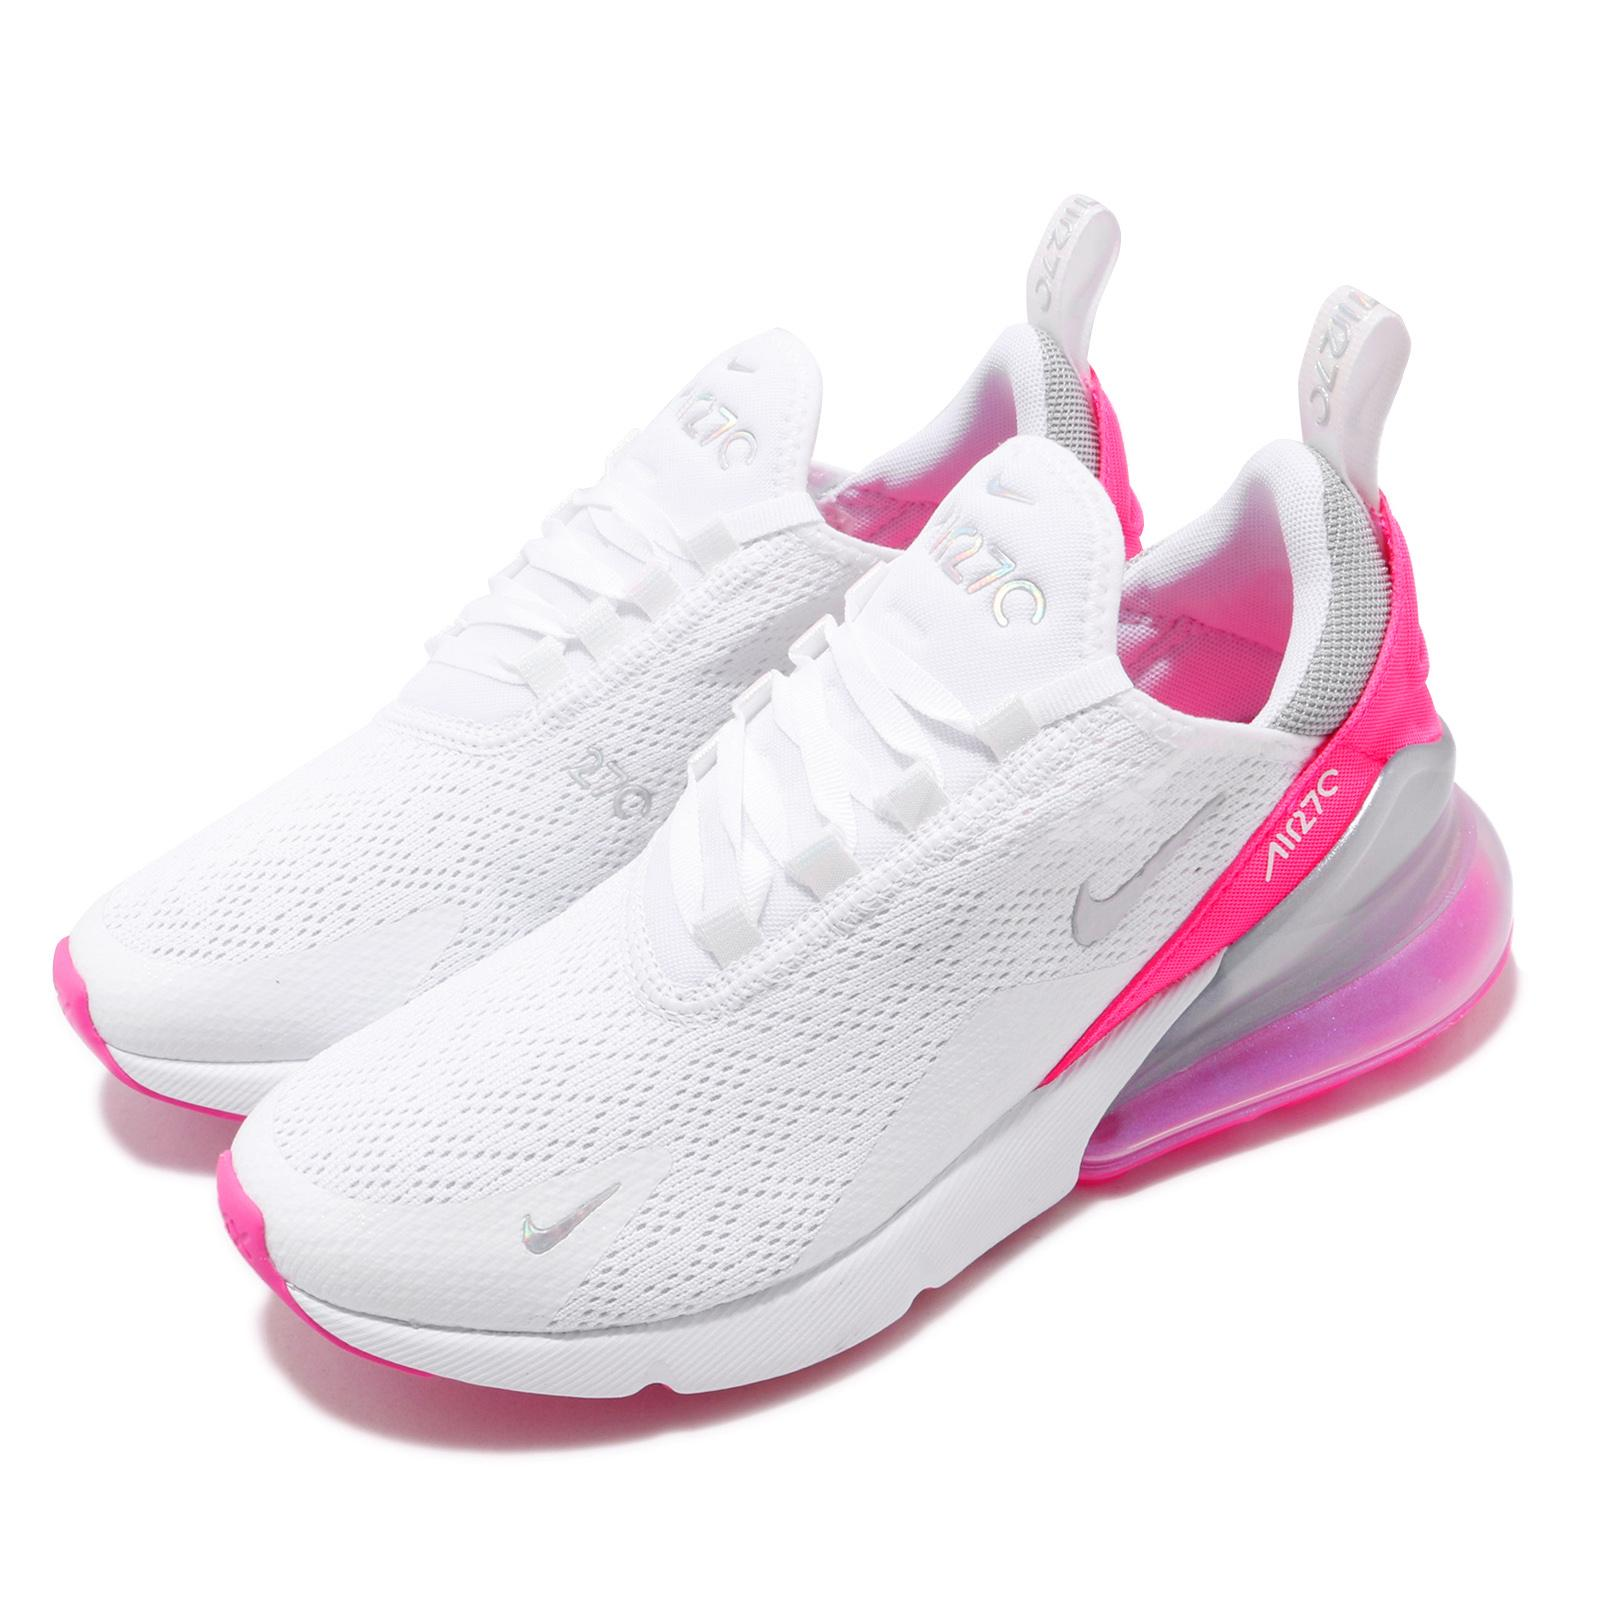 great deals 2017 wholesale price get online Details about Nike Wmns Air Max 270 White Pink Silver Women Running Shoes  Sneakers CI1963-191